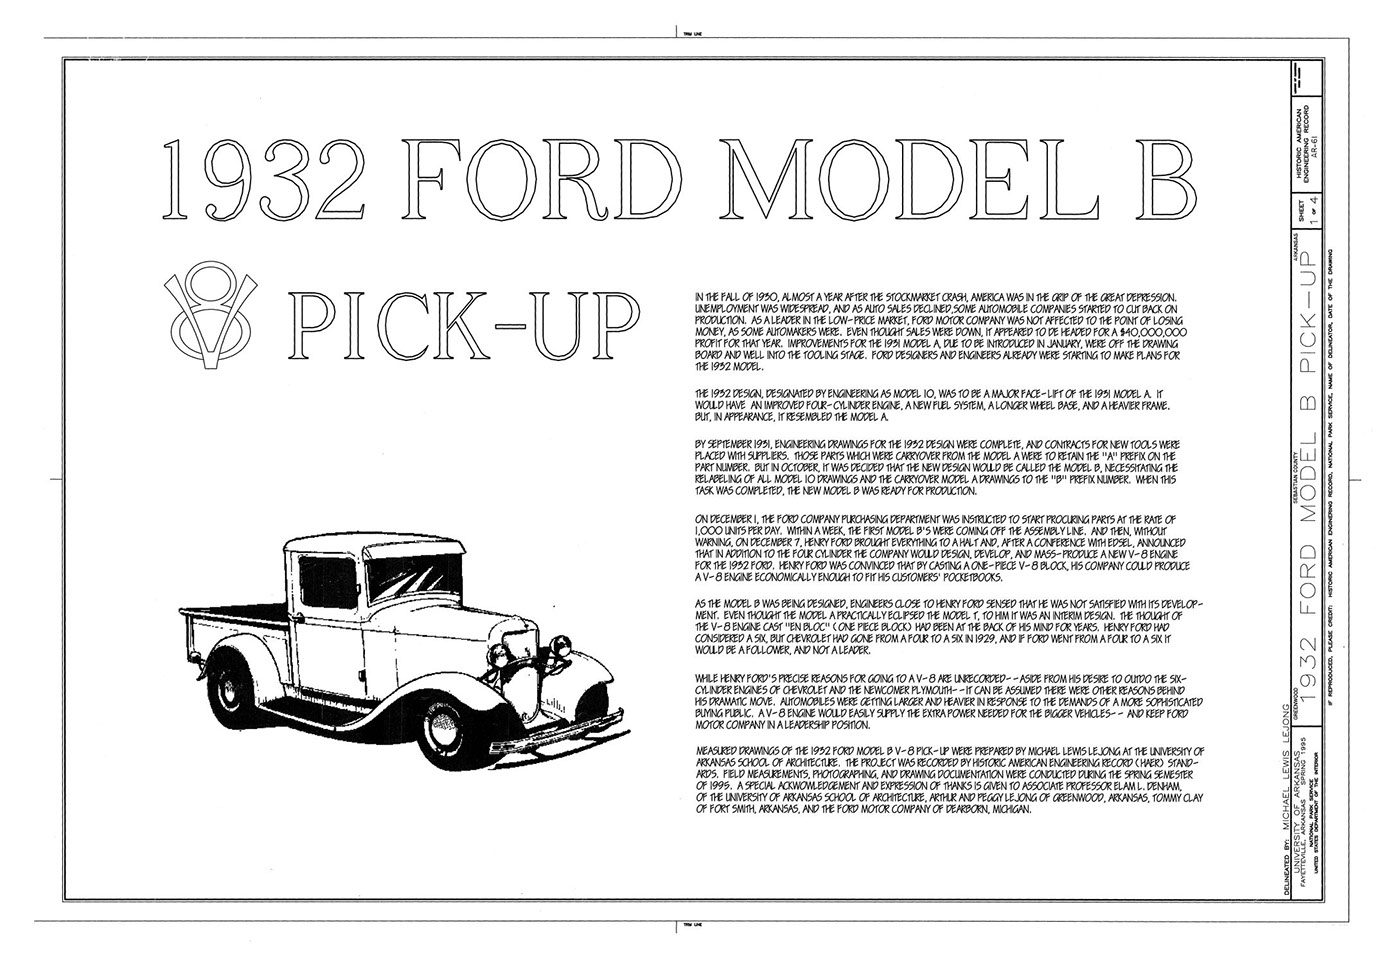 1932 Ford Pickup On Behance Fuel Filter For This Project I Started With A Detailed Blueprint Set That Found Using Google Images Advanced Search Tools Once Had The Blueprints Organized Them